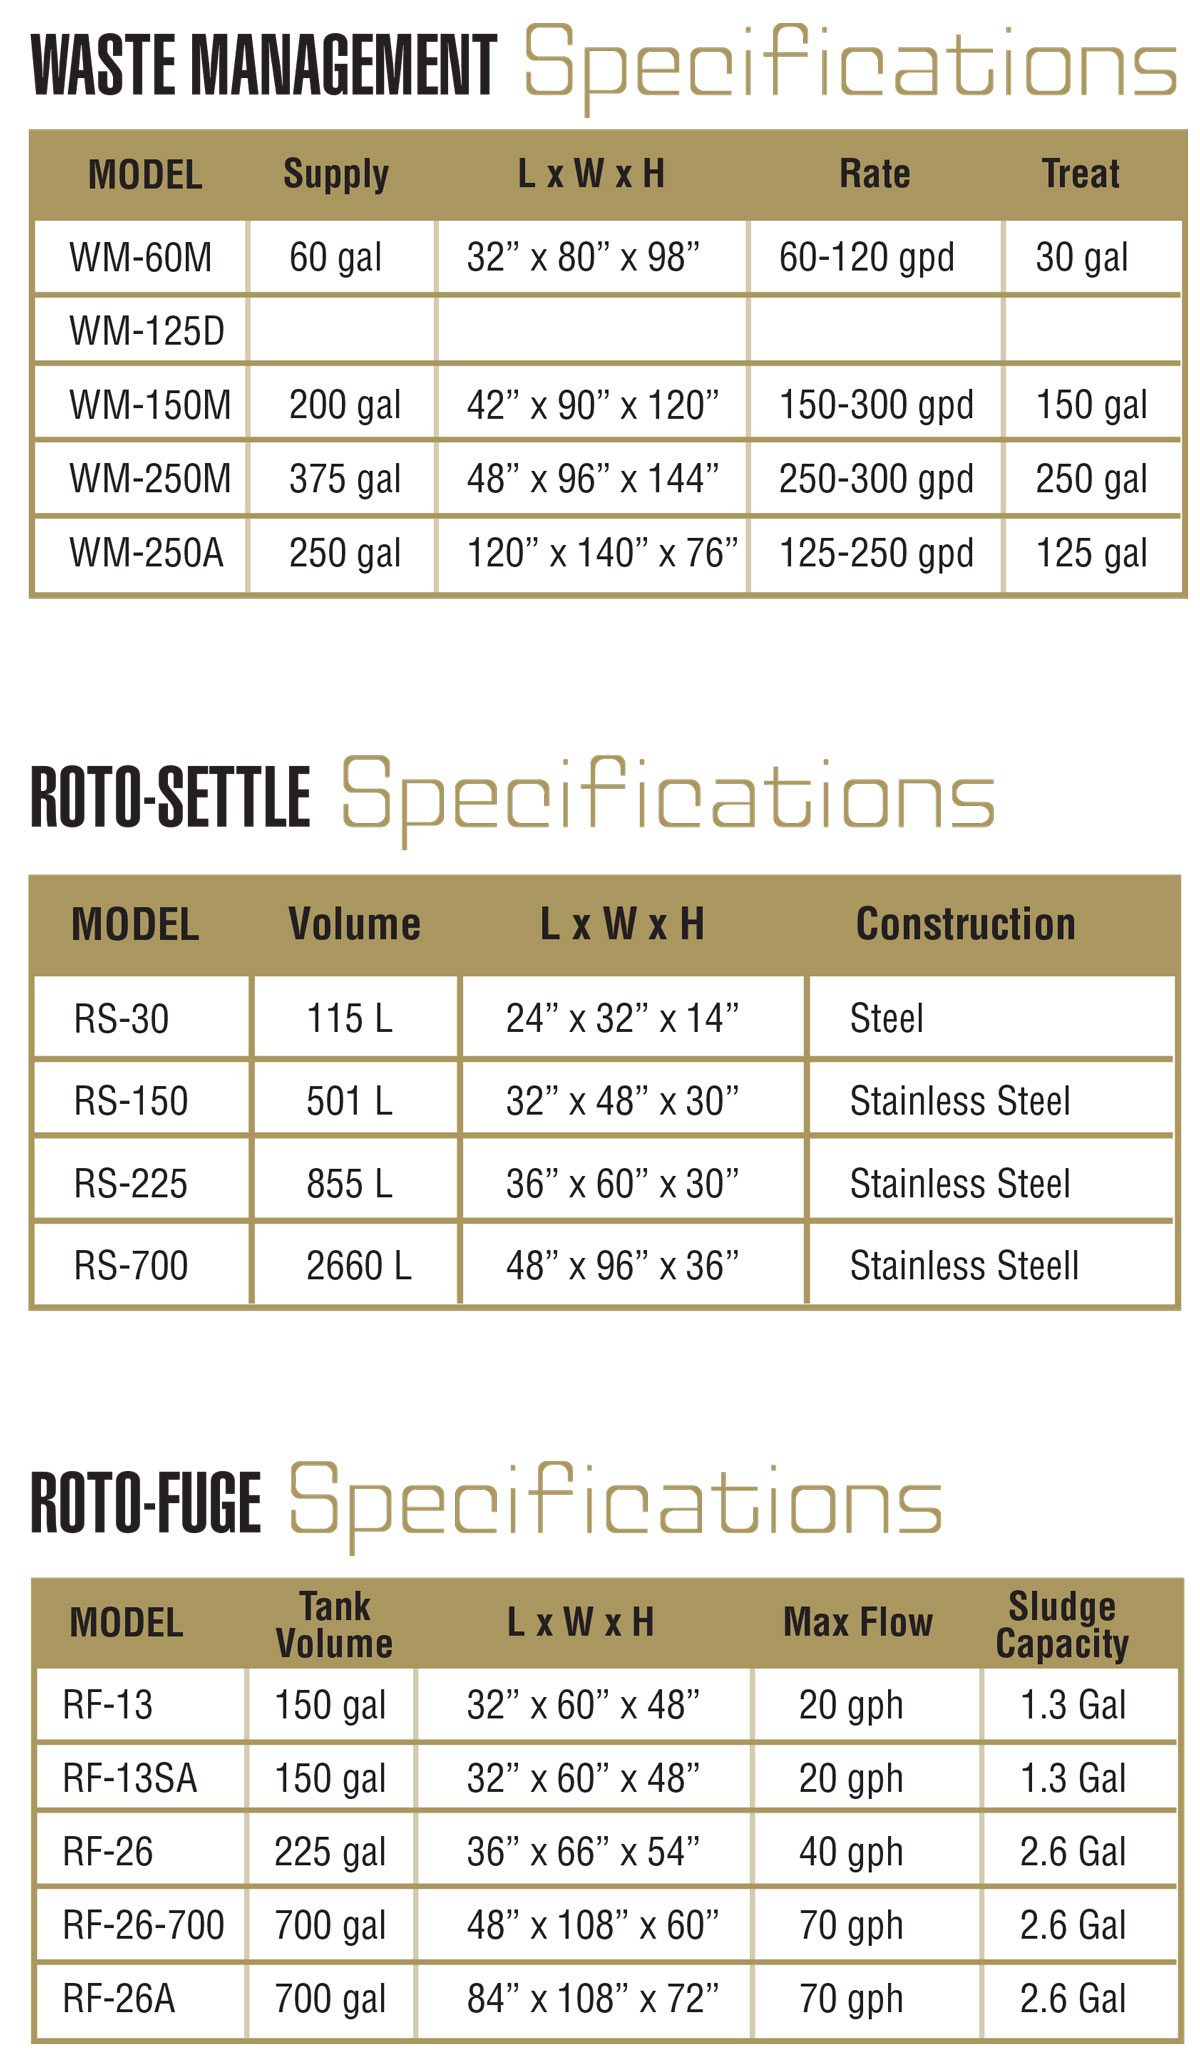 waste management specifications